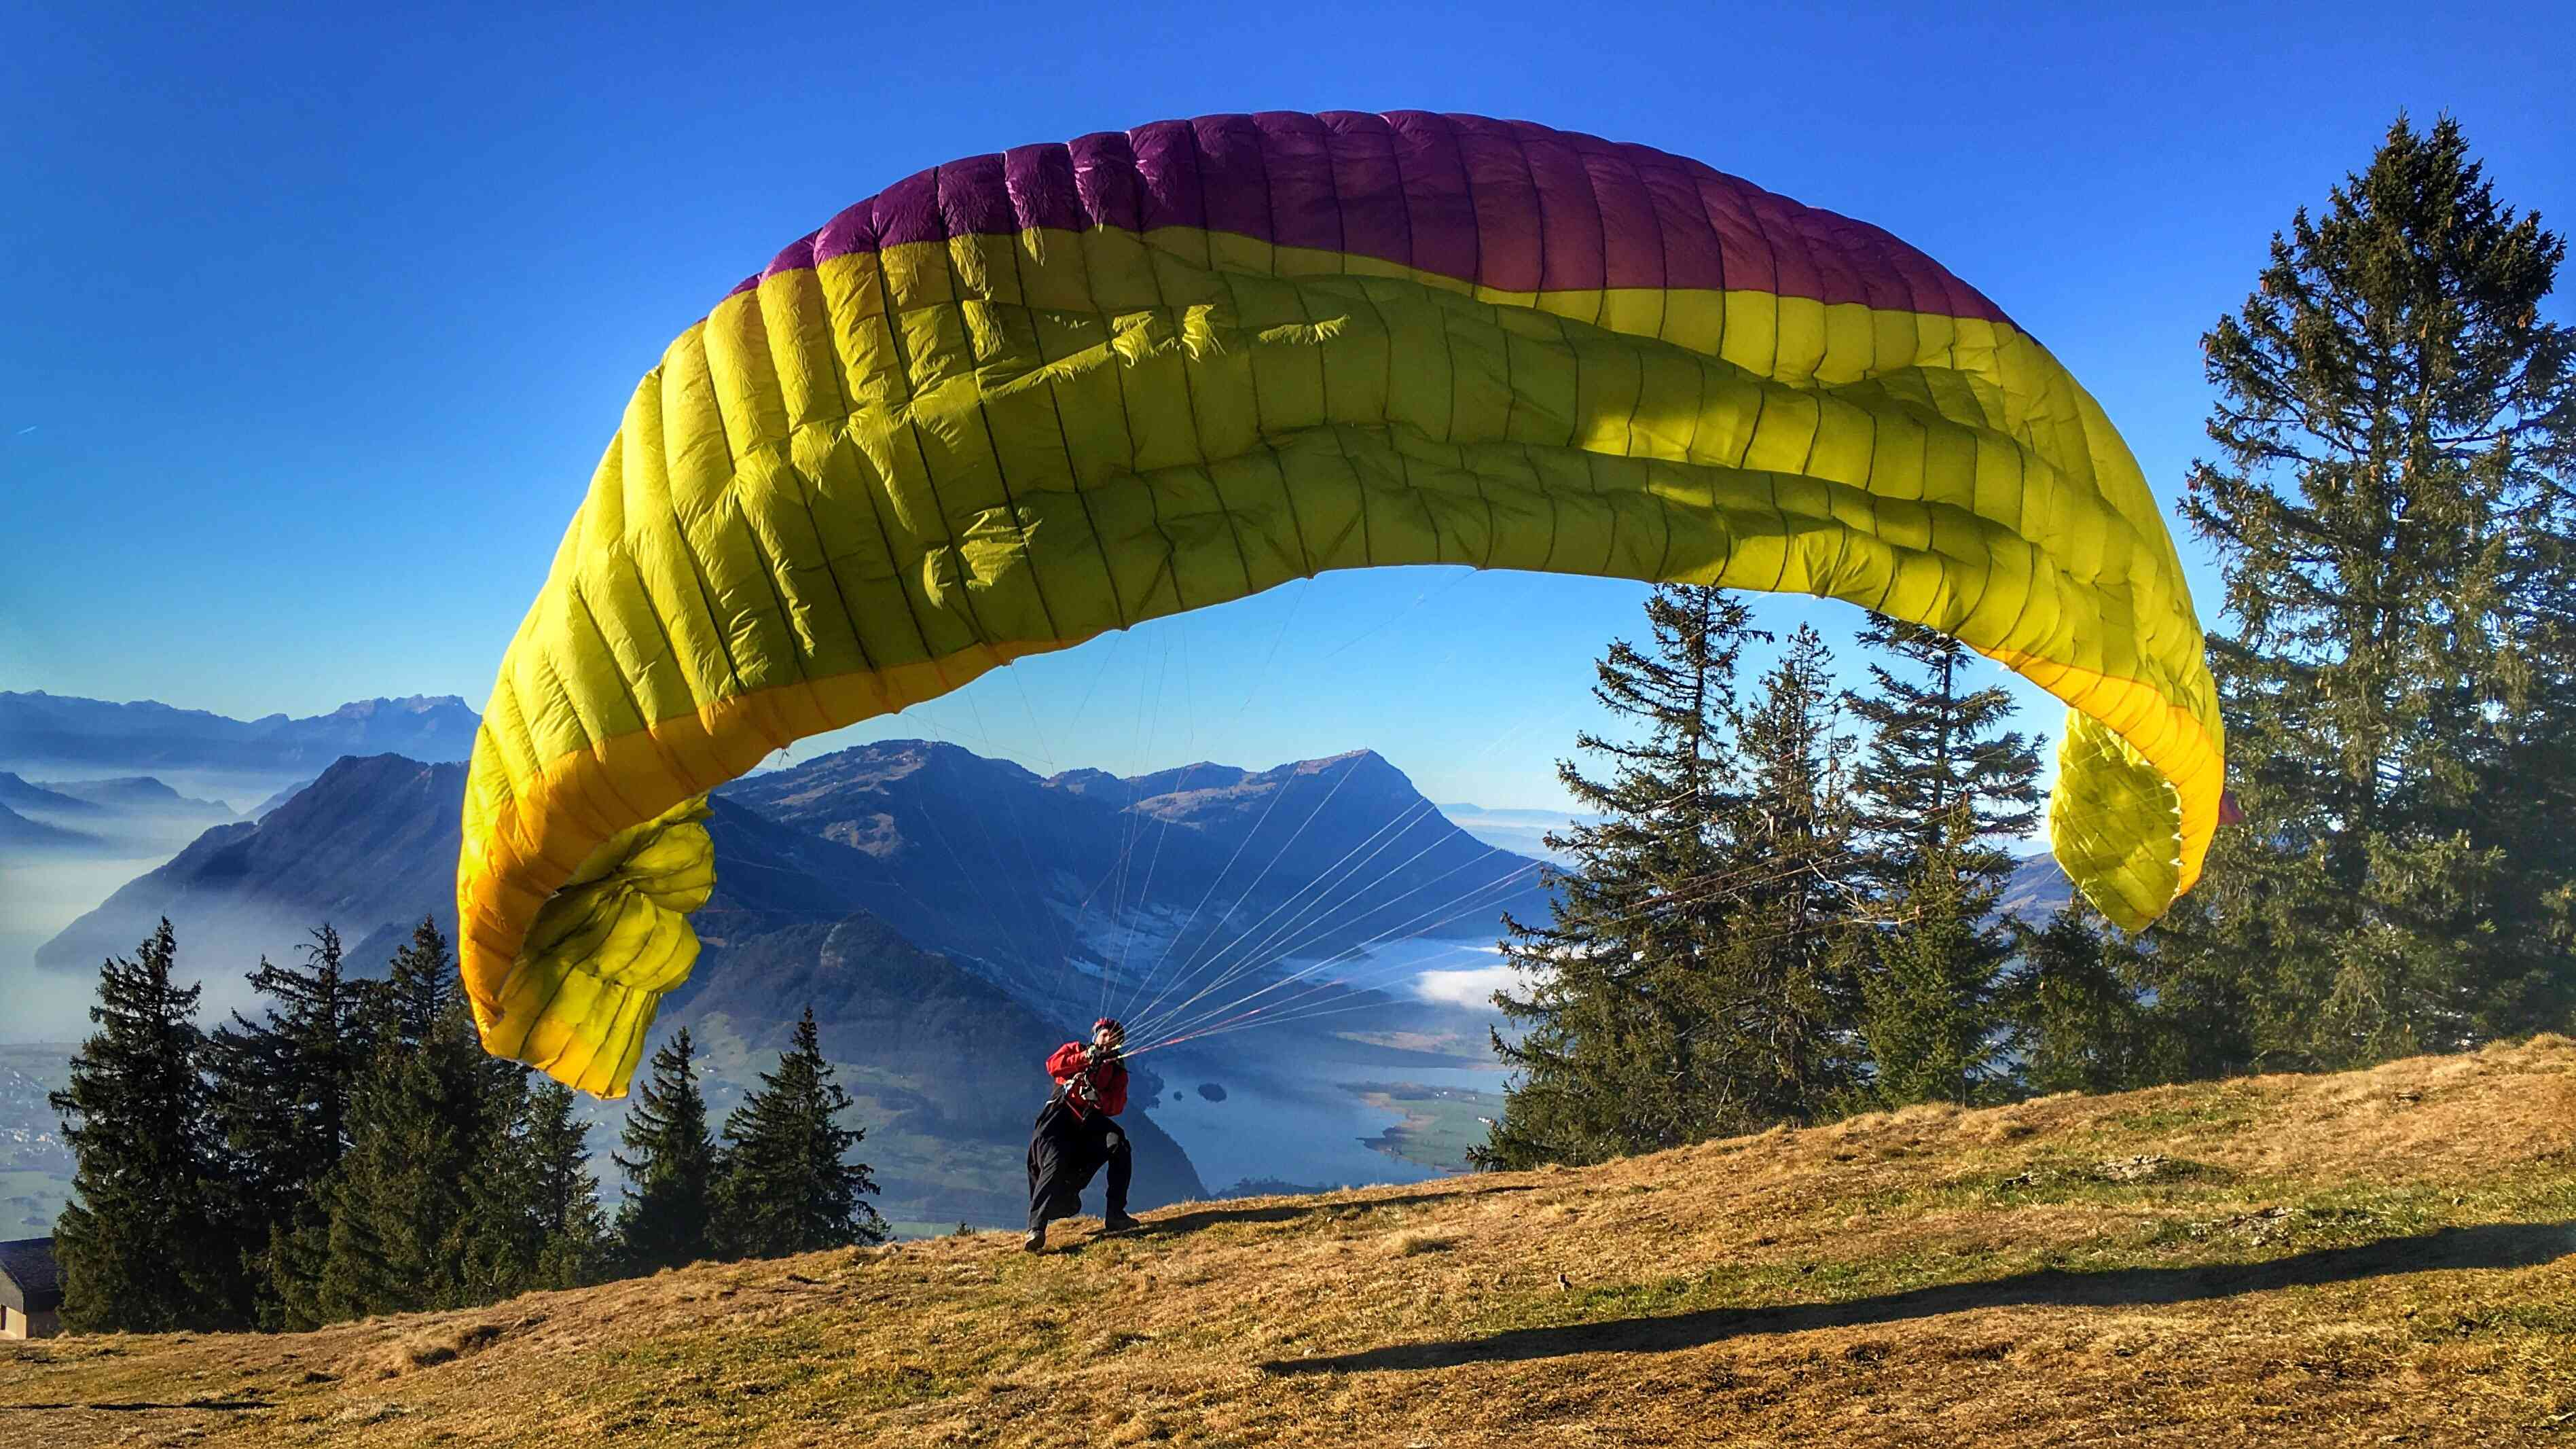 large yellow parasail about to take off with trees and mountains in background